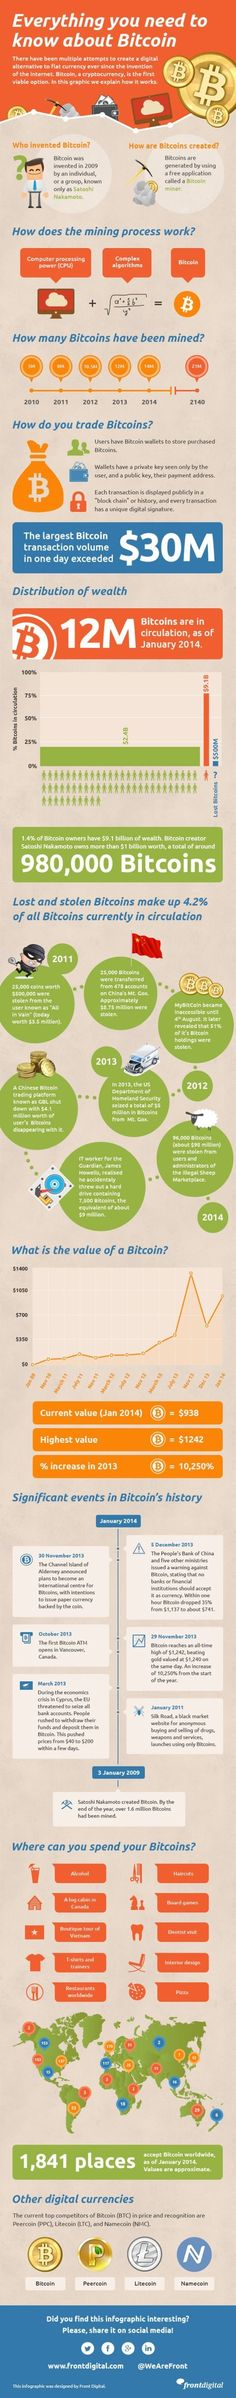 Complete infographic guide about Bitcoin. What is Bitcoin and how can you trade it? What is Bitcoin mining? Learn everything about bitcoin in this infographic.